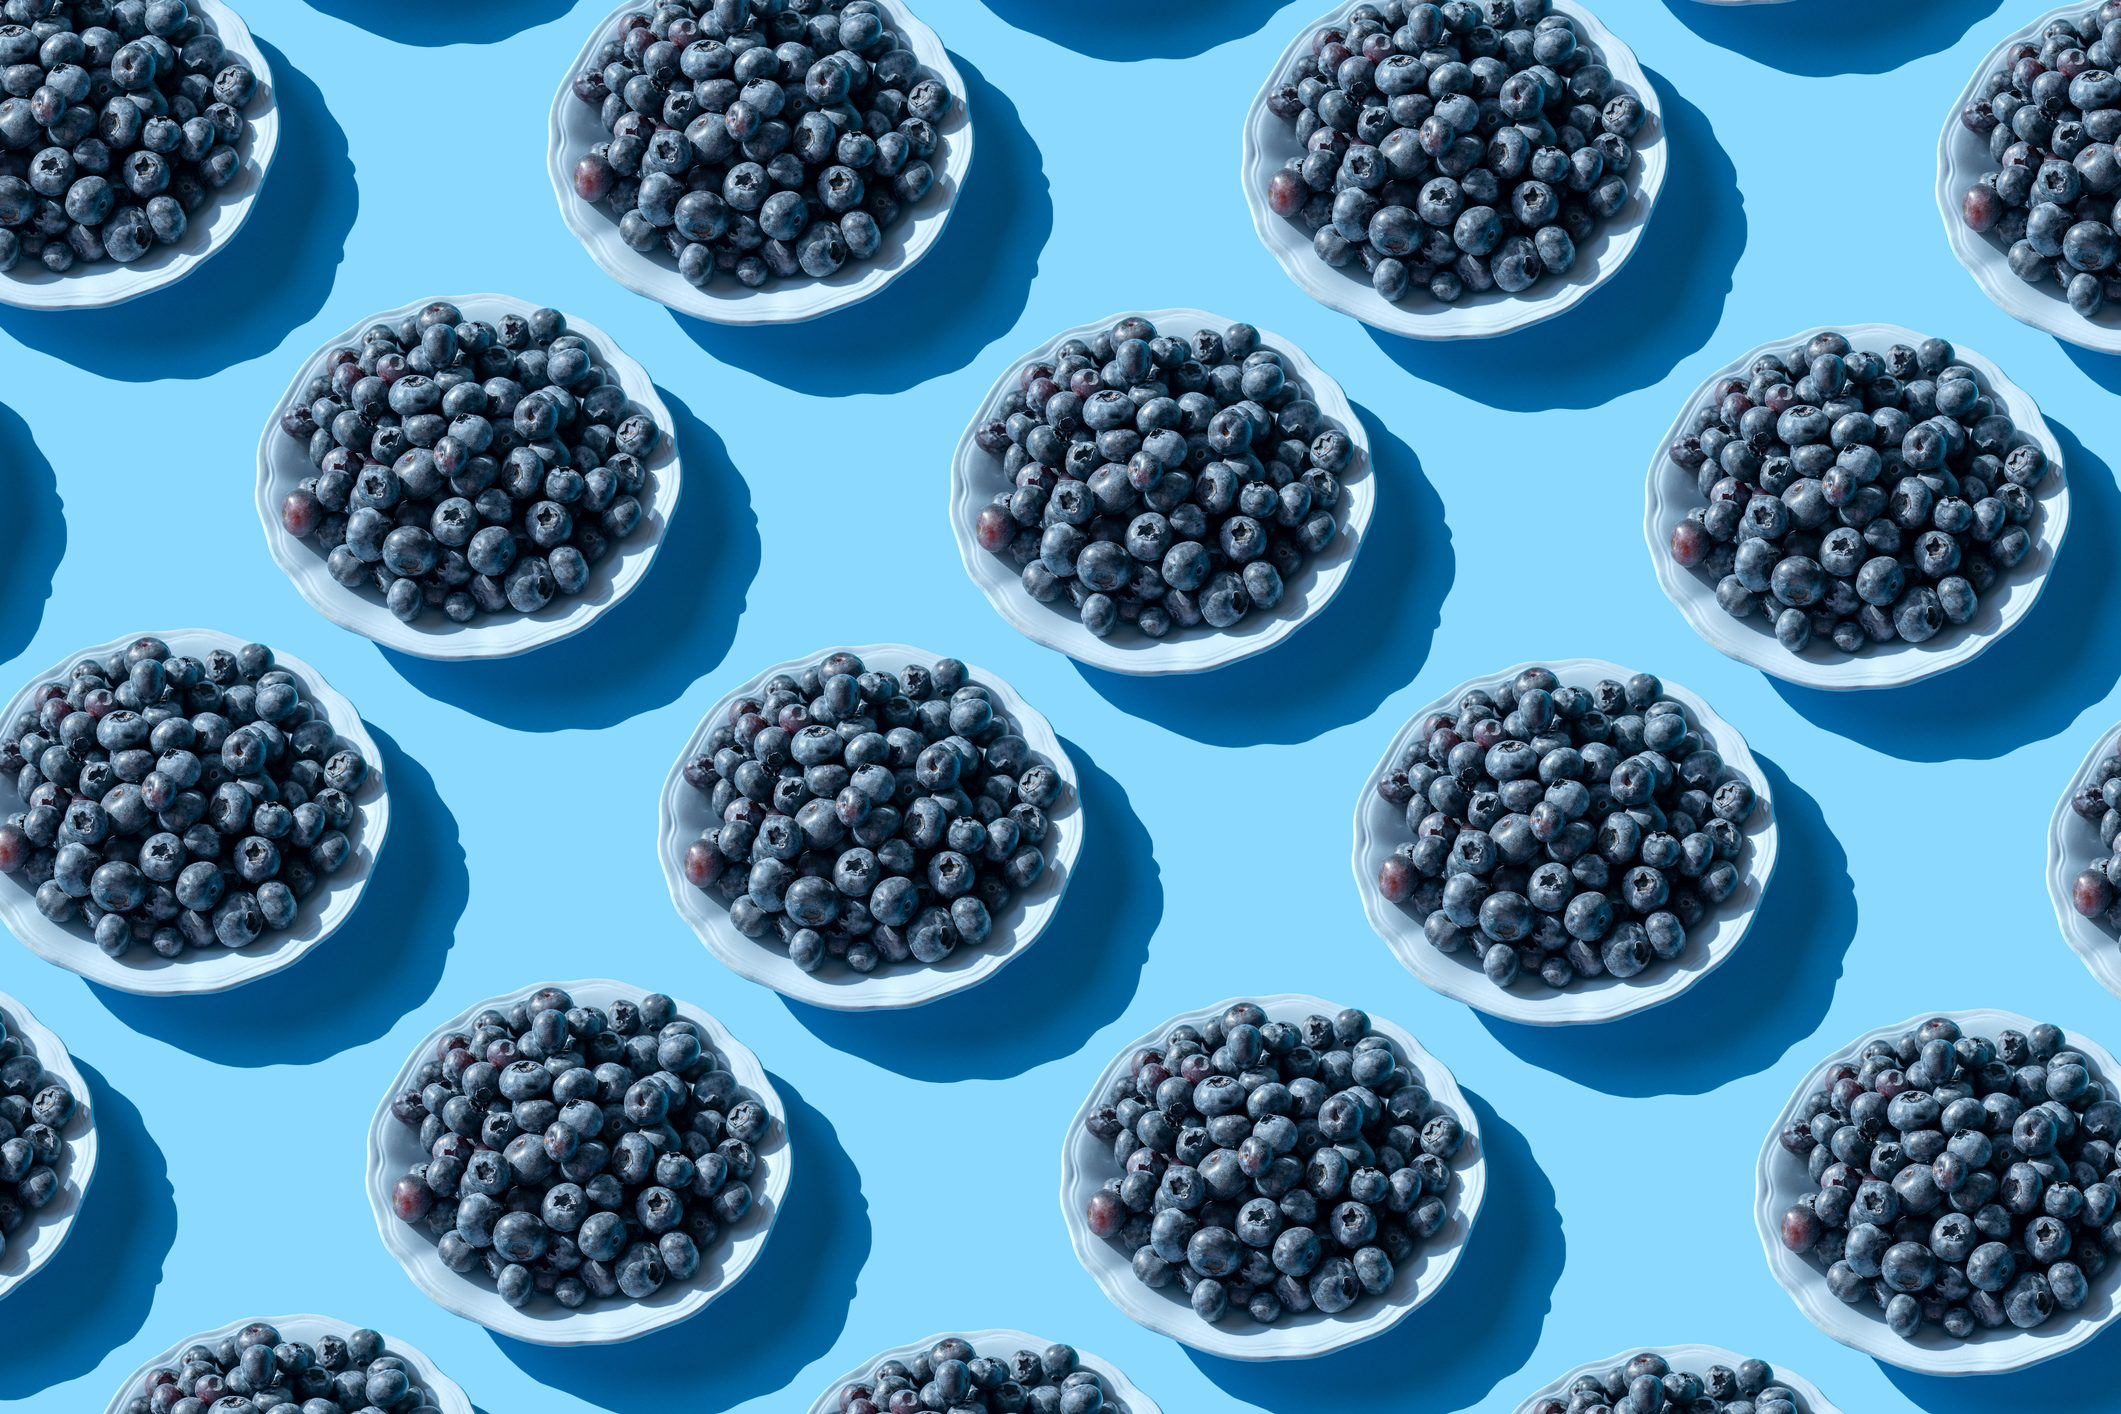 Blueberries on the plate on the blue background